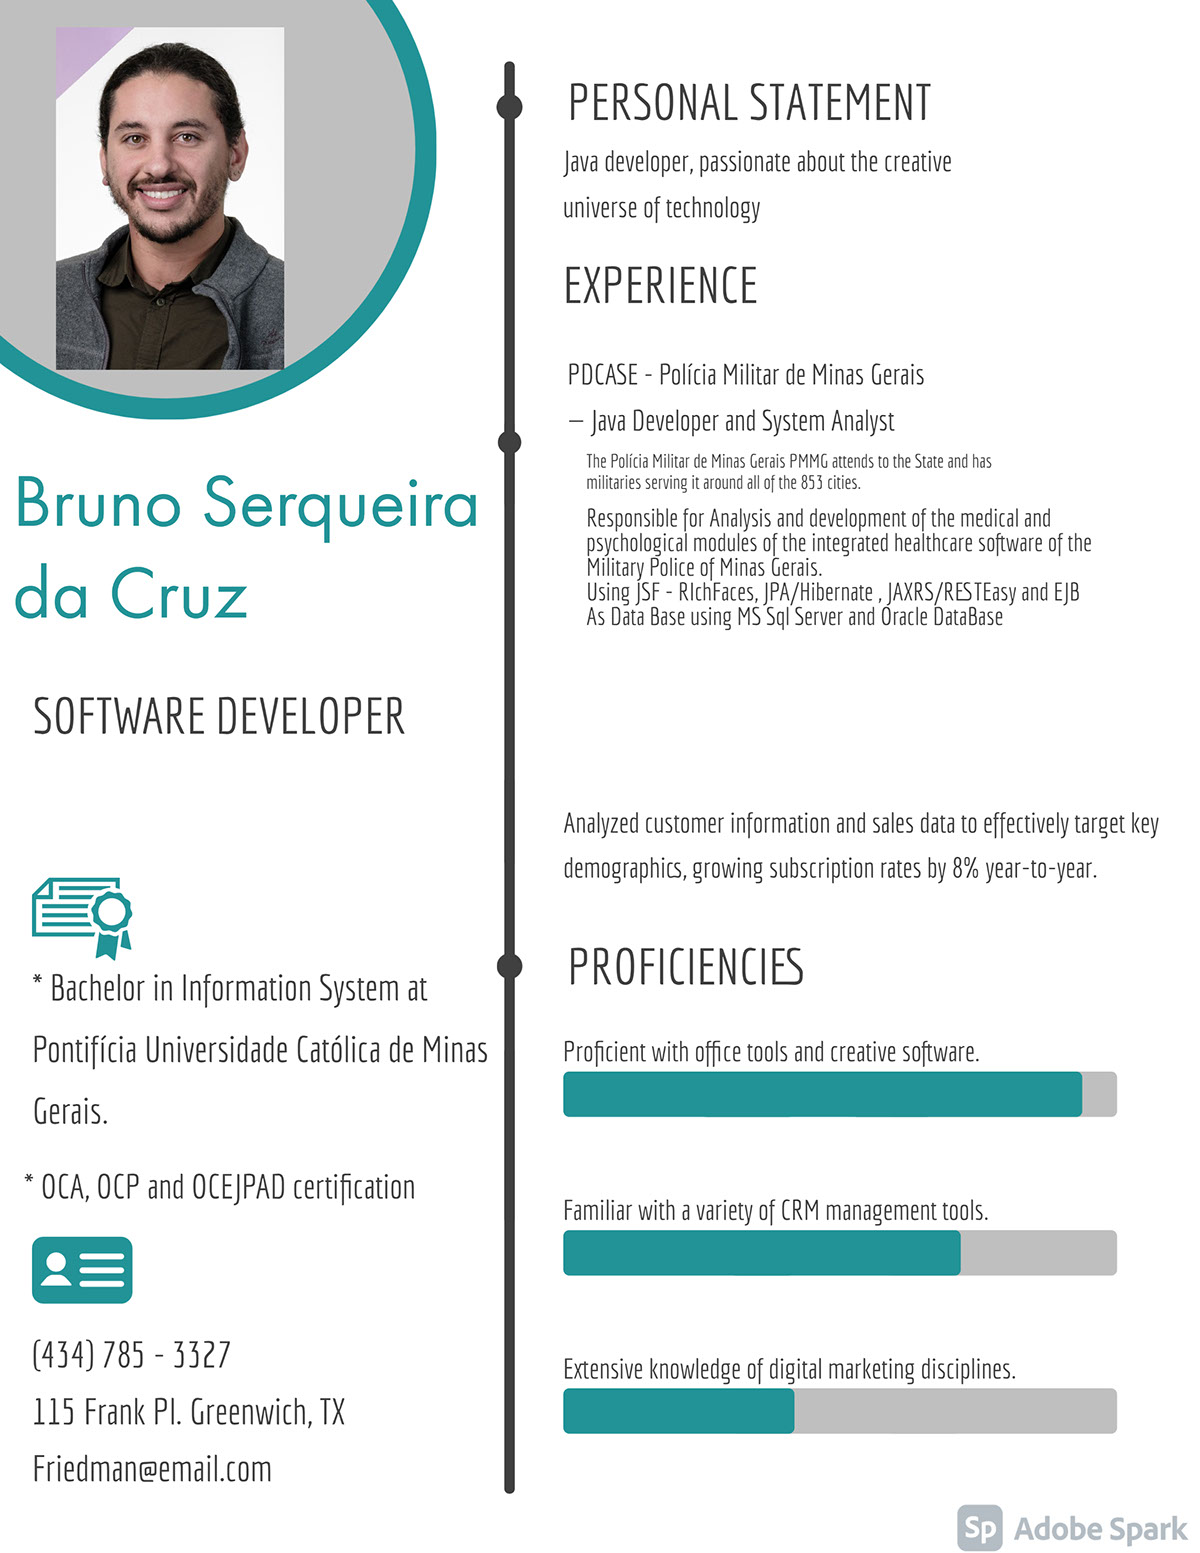 Bruno Serqueira da Cruz Bruno Serqueira da Cruz Software Developer EXPERIENCE PERSONAL STATEMENT PROFICIENCIES (434) 785 - 3327 115 Frank Pl. Greenwich, TX Friedman@email.com * Bachelor in Information System at Pontifícia Universidade Católica de Minas Gerais. * OCA, OCP and OCEJPAD certification PDCASE - Polícia Militar de Minas Gerais — Java Developer and System Analyst Java developer, passionate about the creative universe of technology Analyzed customer information and sales data to effectively target key demographics, growing subscription rates by 8% year-to-year. Proficient with office tools and creative software. Familiar with a variety of CRM management tools. Extensive knowledge of digital marketing disciplines. Responsible for Analysis and development of the medical and psychological modules of the integrated healthcare software of the Military Police of Minas Gerais. Using JSF - RIchFaces, JPA/Hibernate , JAXRS/RESTEasy and EJB As Data Base using MS Sql Server and Oracle DataBase The Polícia Militar de Minas Gerais PMMG attends to the State and has militaries serving it around all of the 853 cities.